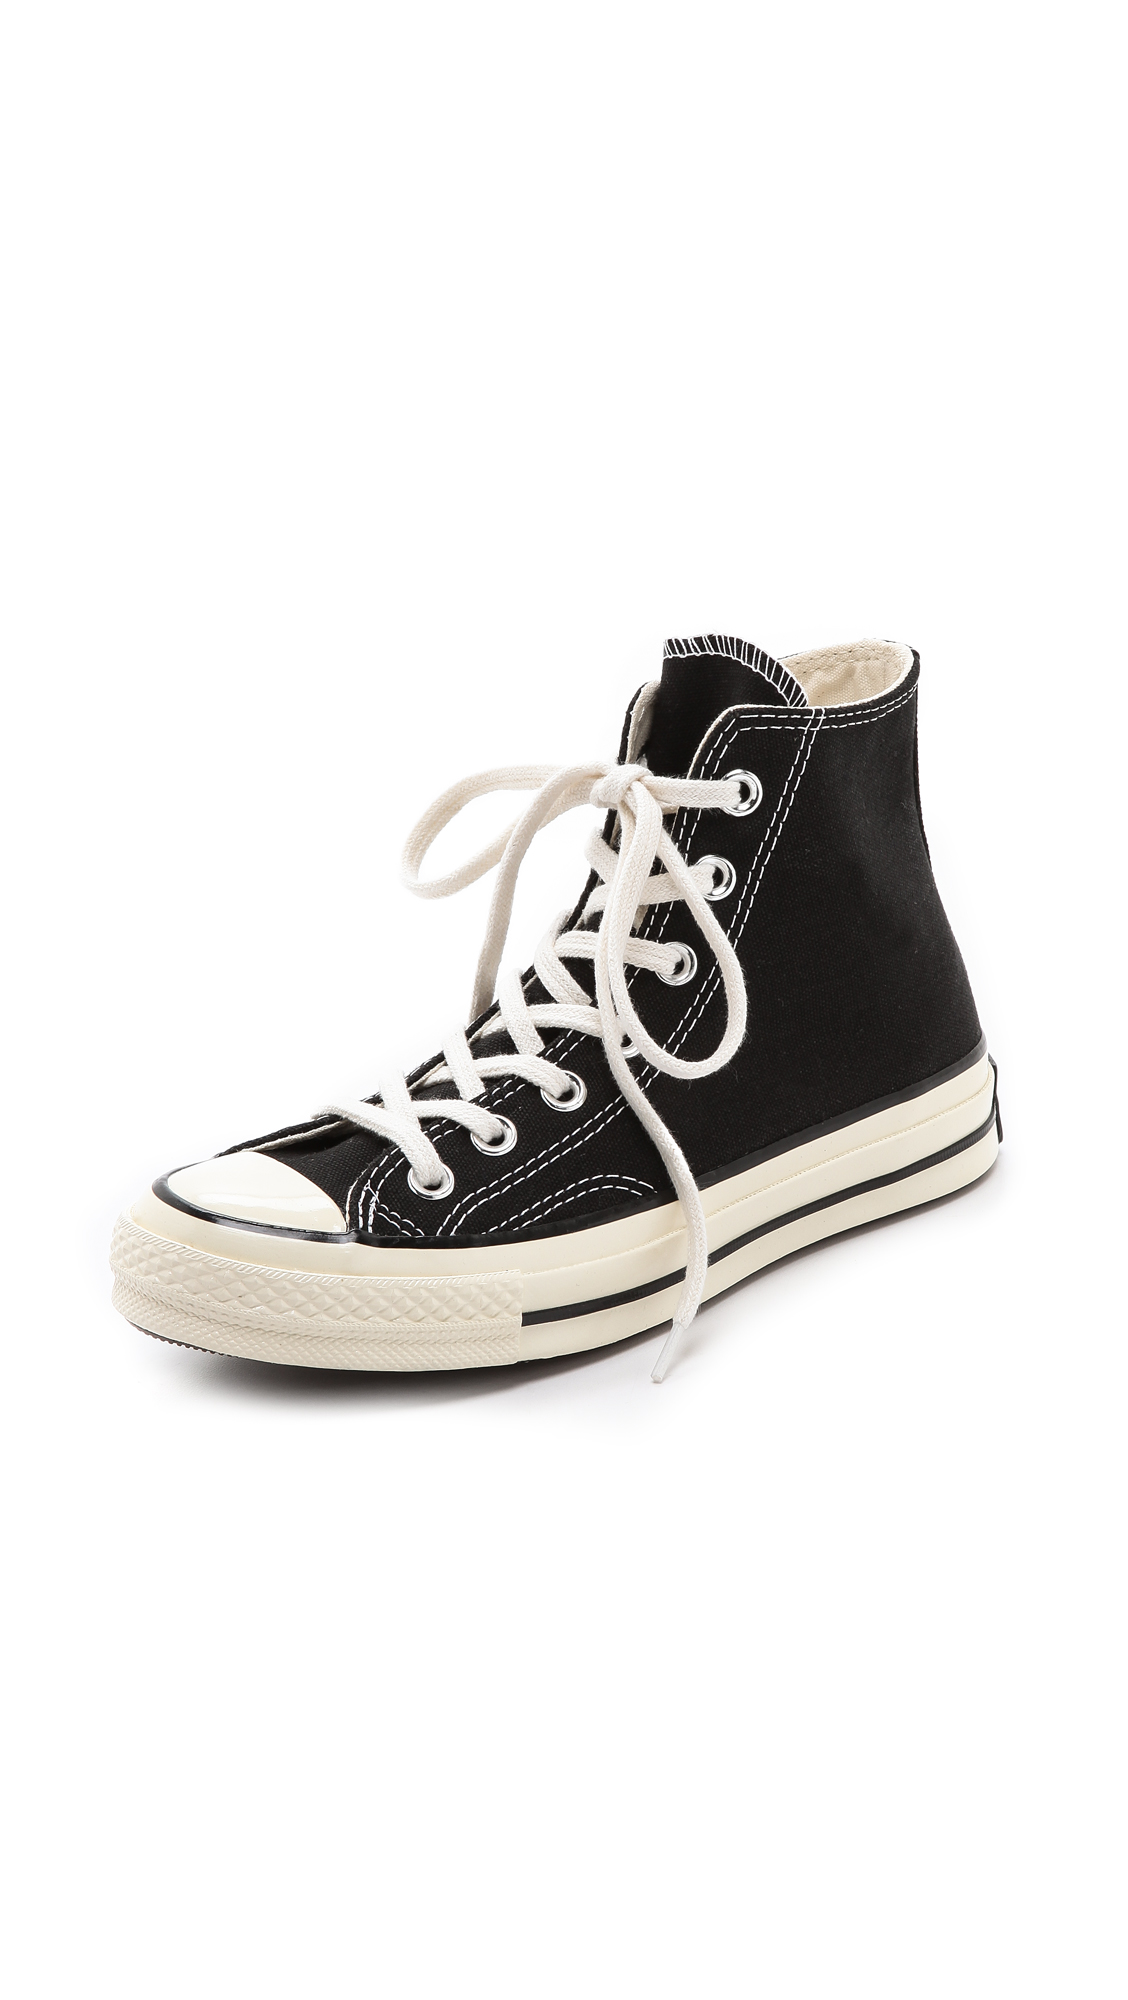 Discover cheap high top shoes online at exeezipcoolgetsiu9tq.cf, we offer the seasons latest styles of high top shoes at discount price. We also offer Wholesale service.